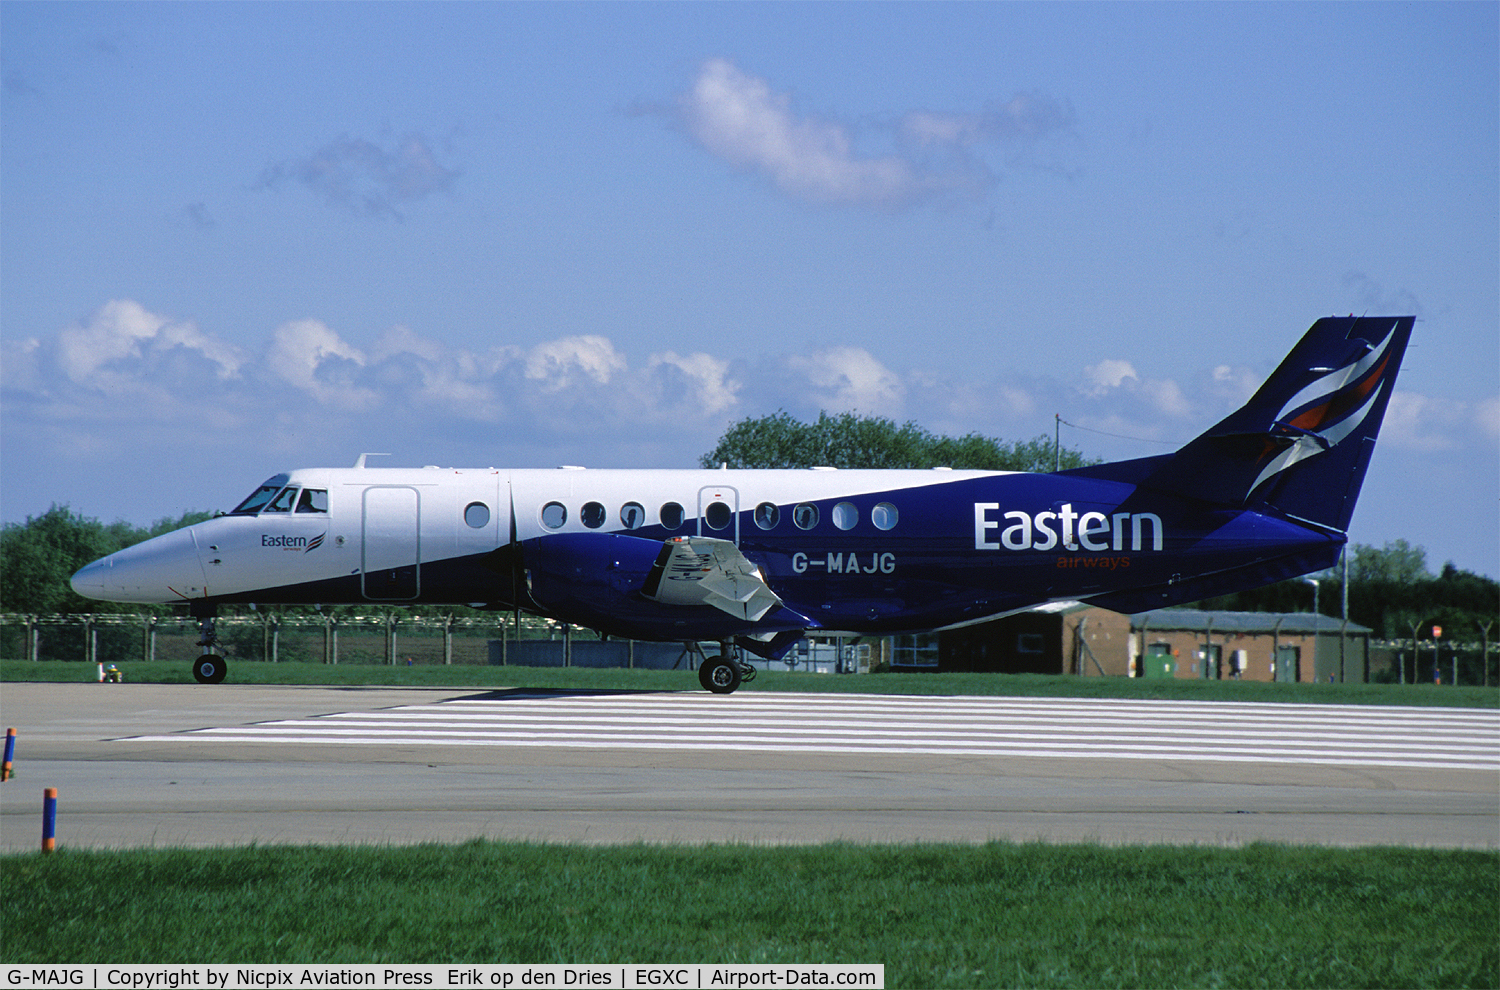 G-MAJG, 1993 British Aerospace Jetstream 41 C/N 41009, G-MAJG was the daily taxi to and from RAF Marham.